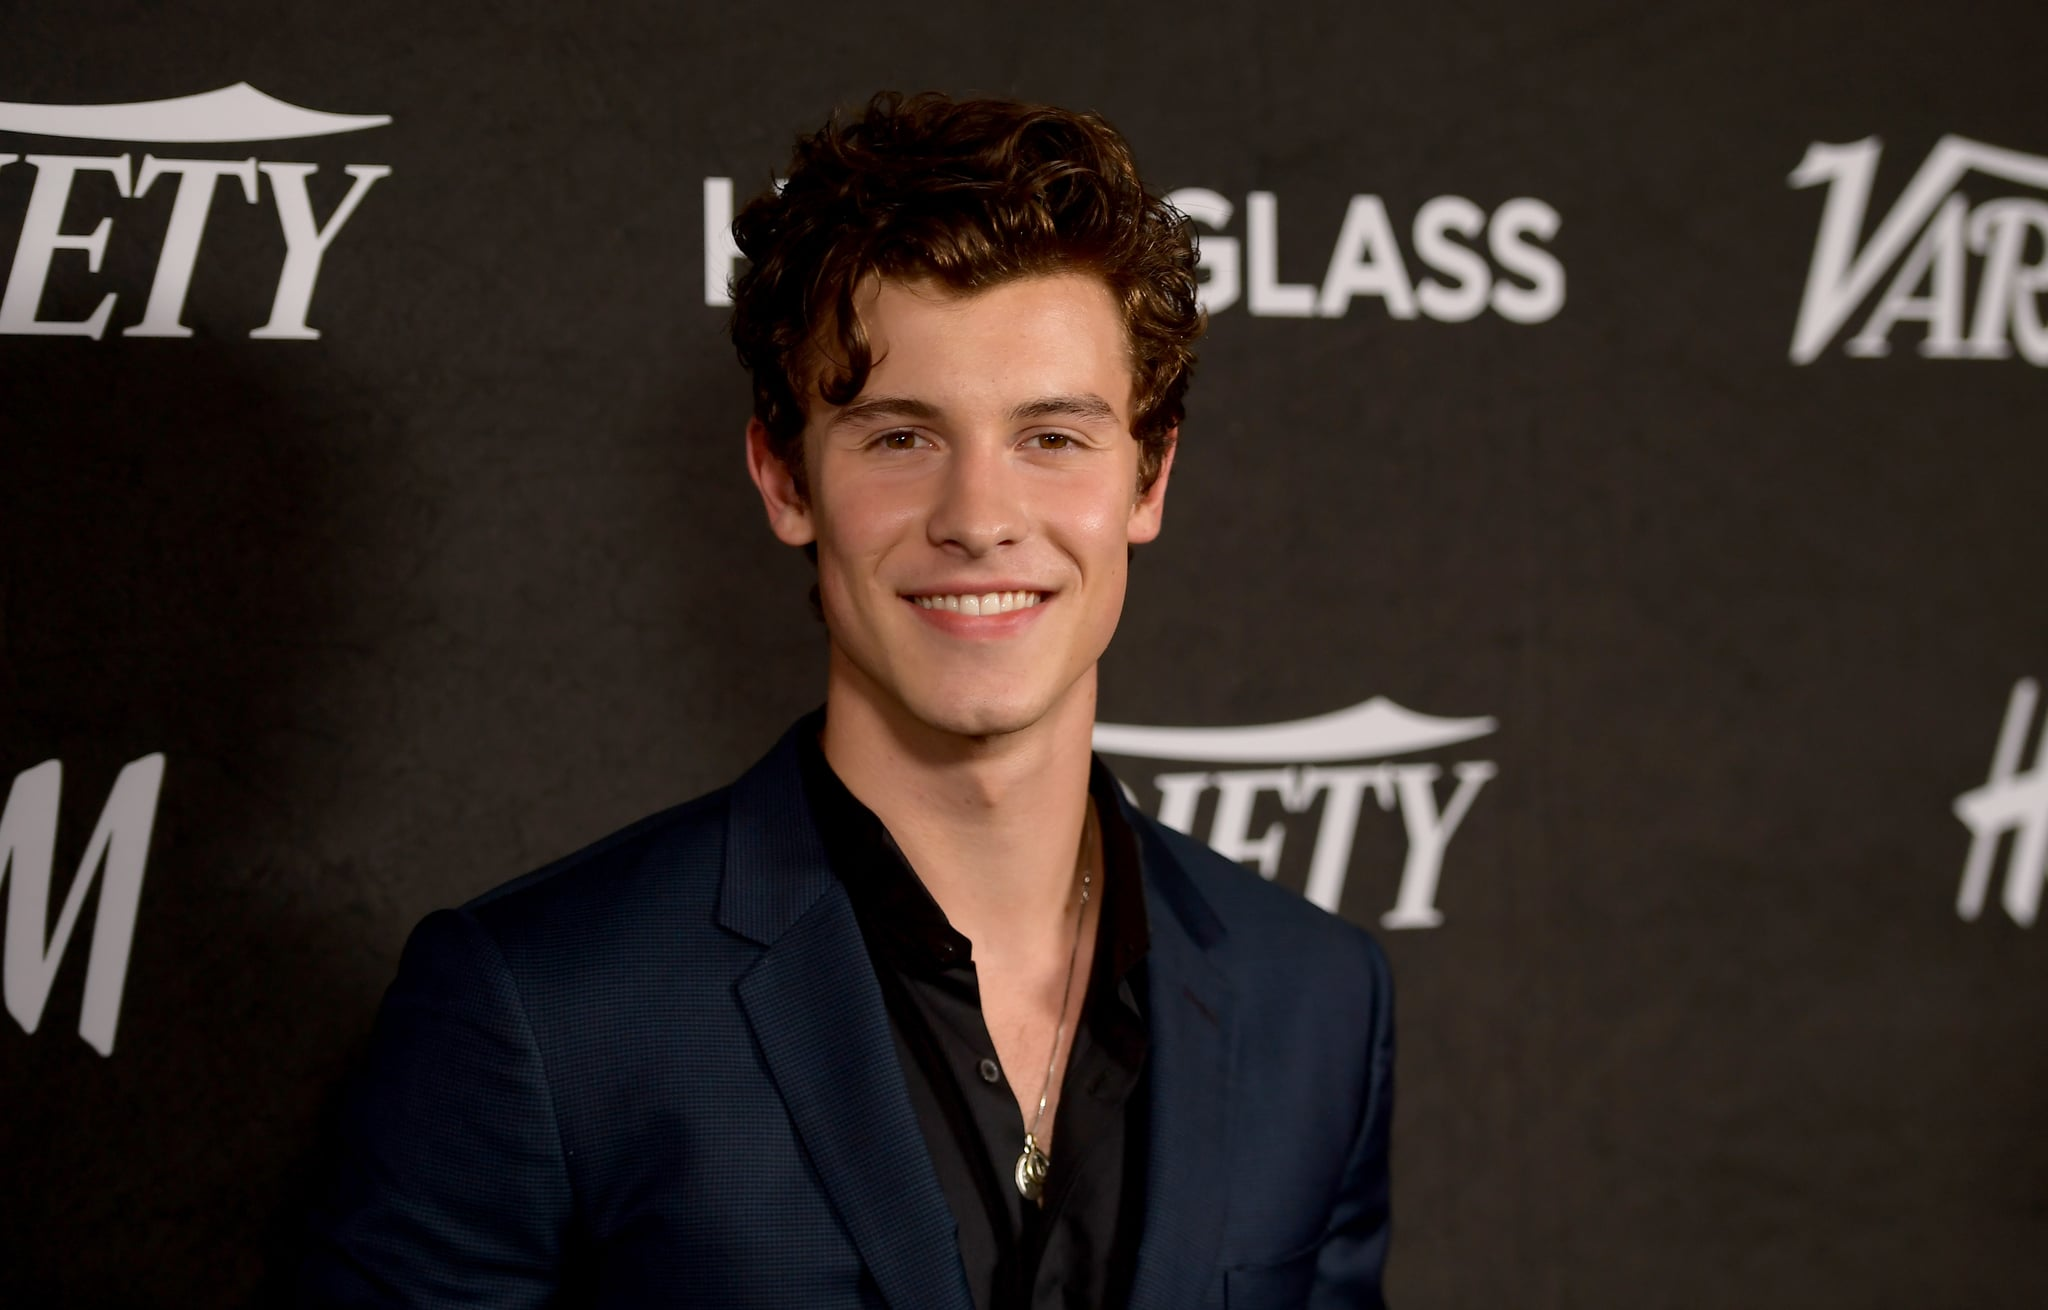 WEST HOLLYWOOD, CA - AUGUST 28:  Shawn Mendes attends Variety's annual Power of Young Hollywood at Sunset Tower Hotel on August 28, 2018 in West Hollywood, California.  (Photo by Matt Winkelmeyer/Getty Images)